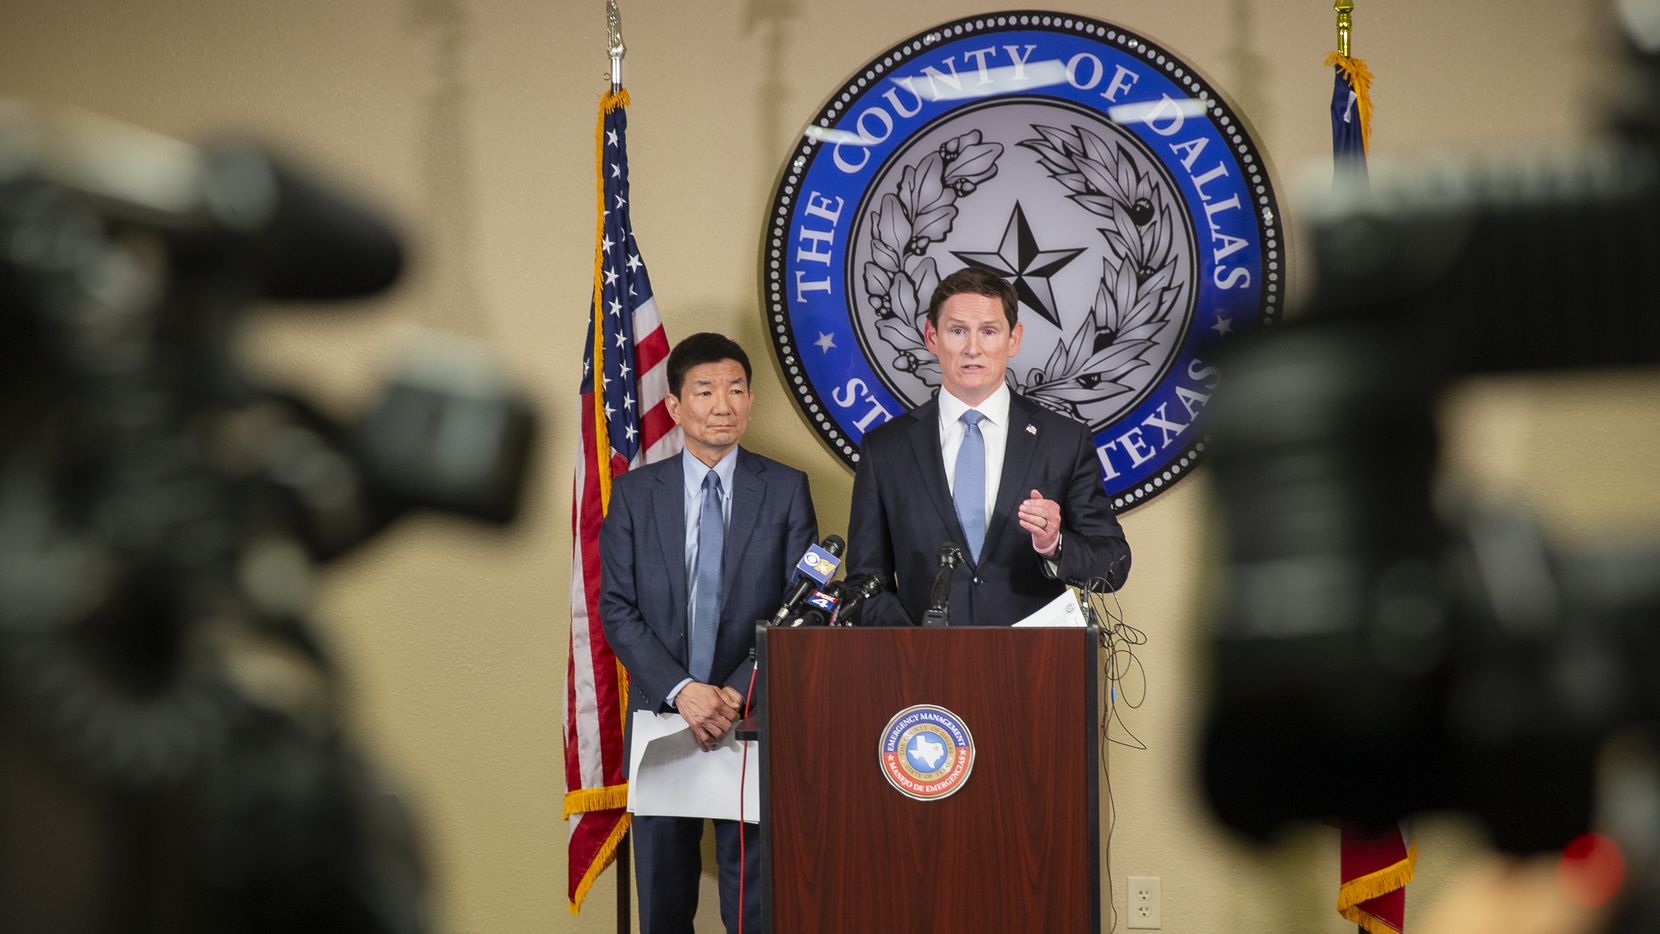 Dallas County Judge Clay Jenkins (right) and Dr. Philip Huang, Director of Dallas County Health and Human Services, ordered bars and restaurants to shut down throughout the area to help stem the new coronavirus at a press conference on March 16, 2020 in Dallas.